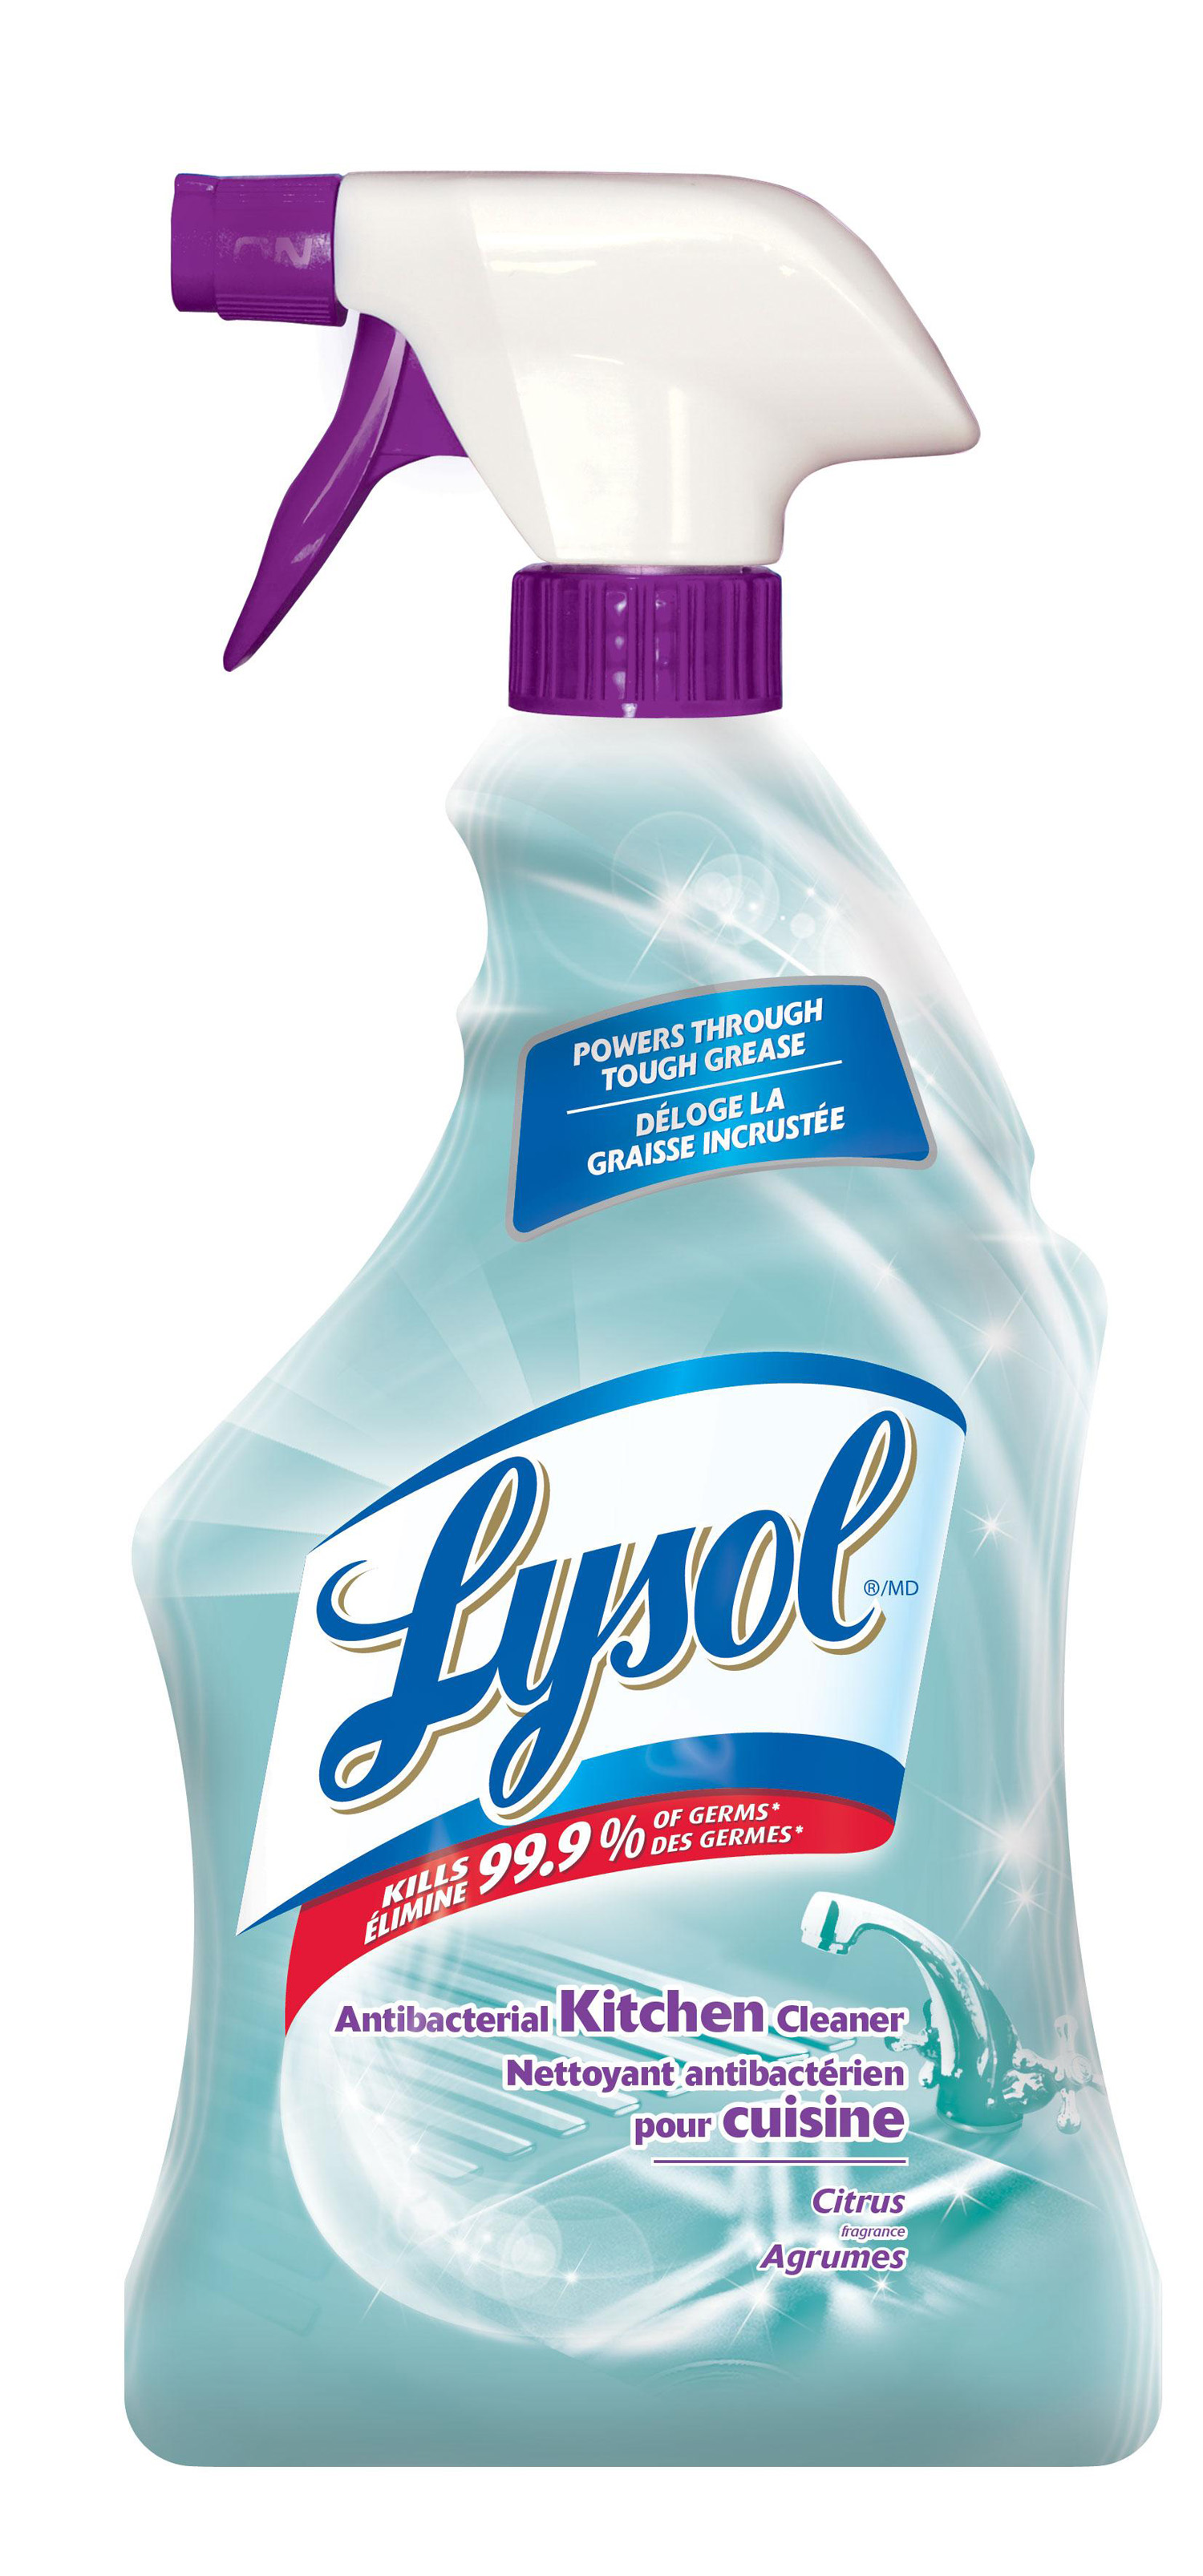 LYSOL Antibacterial Kitchen Cleaner Citrus Scent Canada - Kitchen cleaner